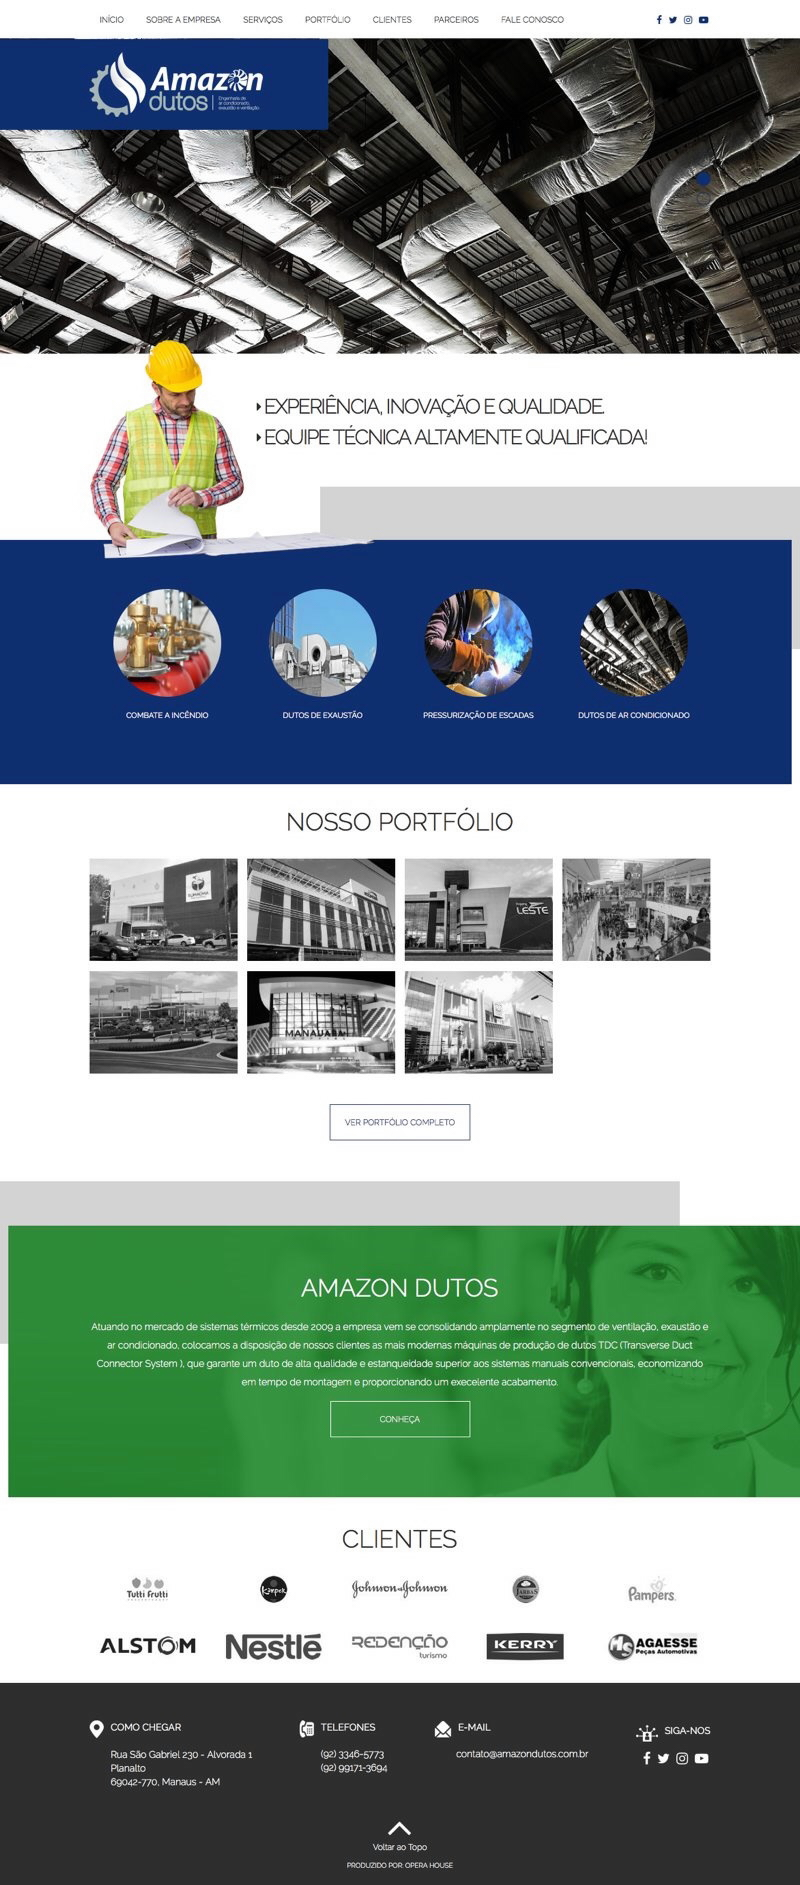 Site Amazon Dutos